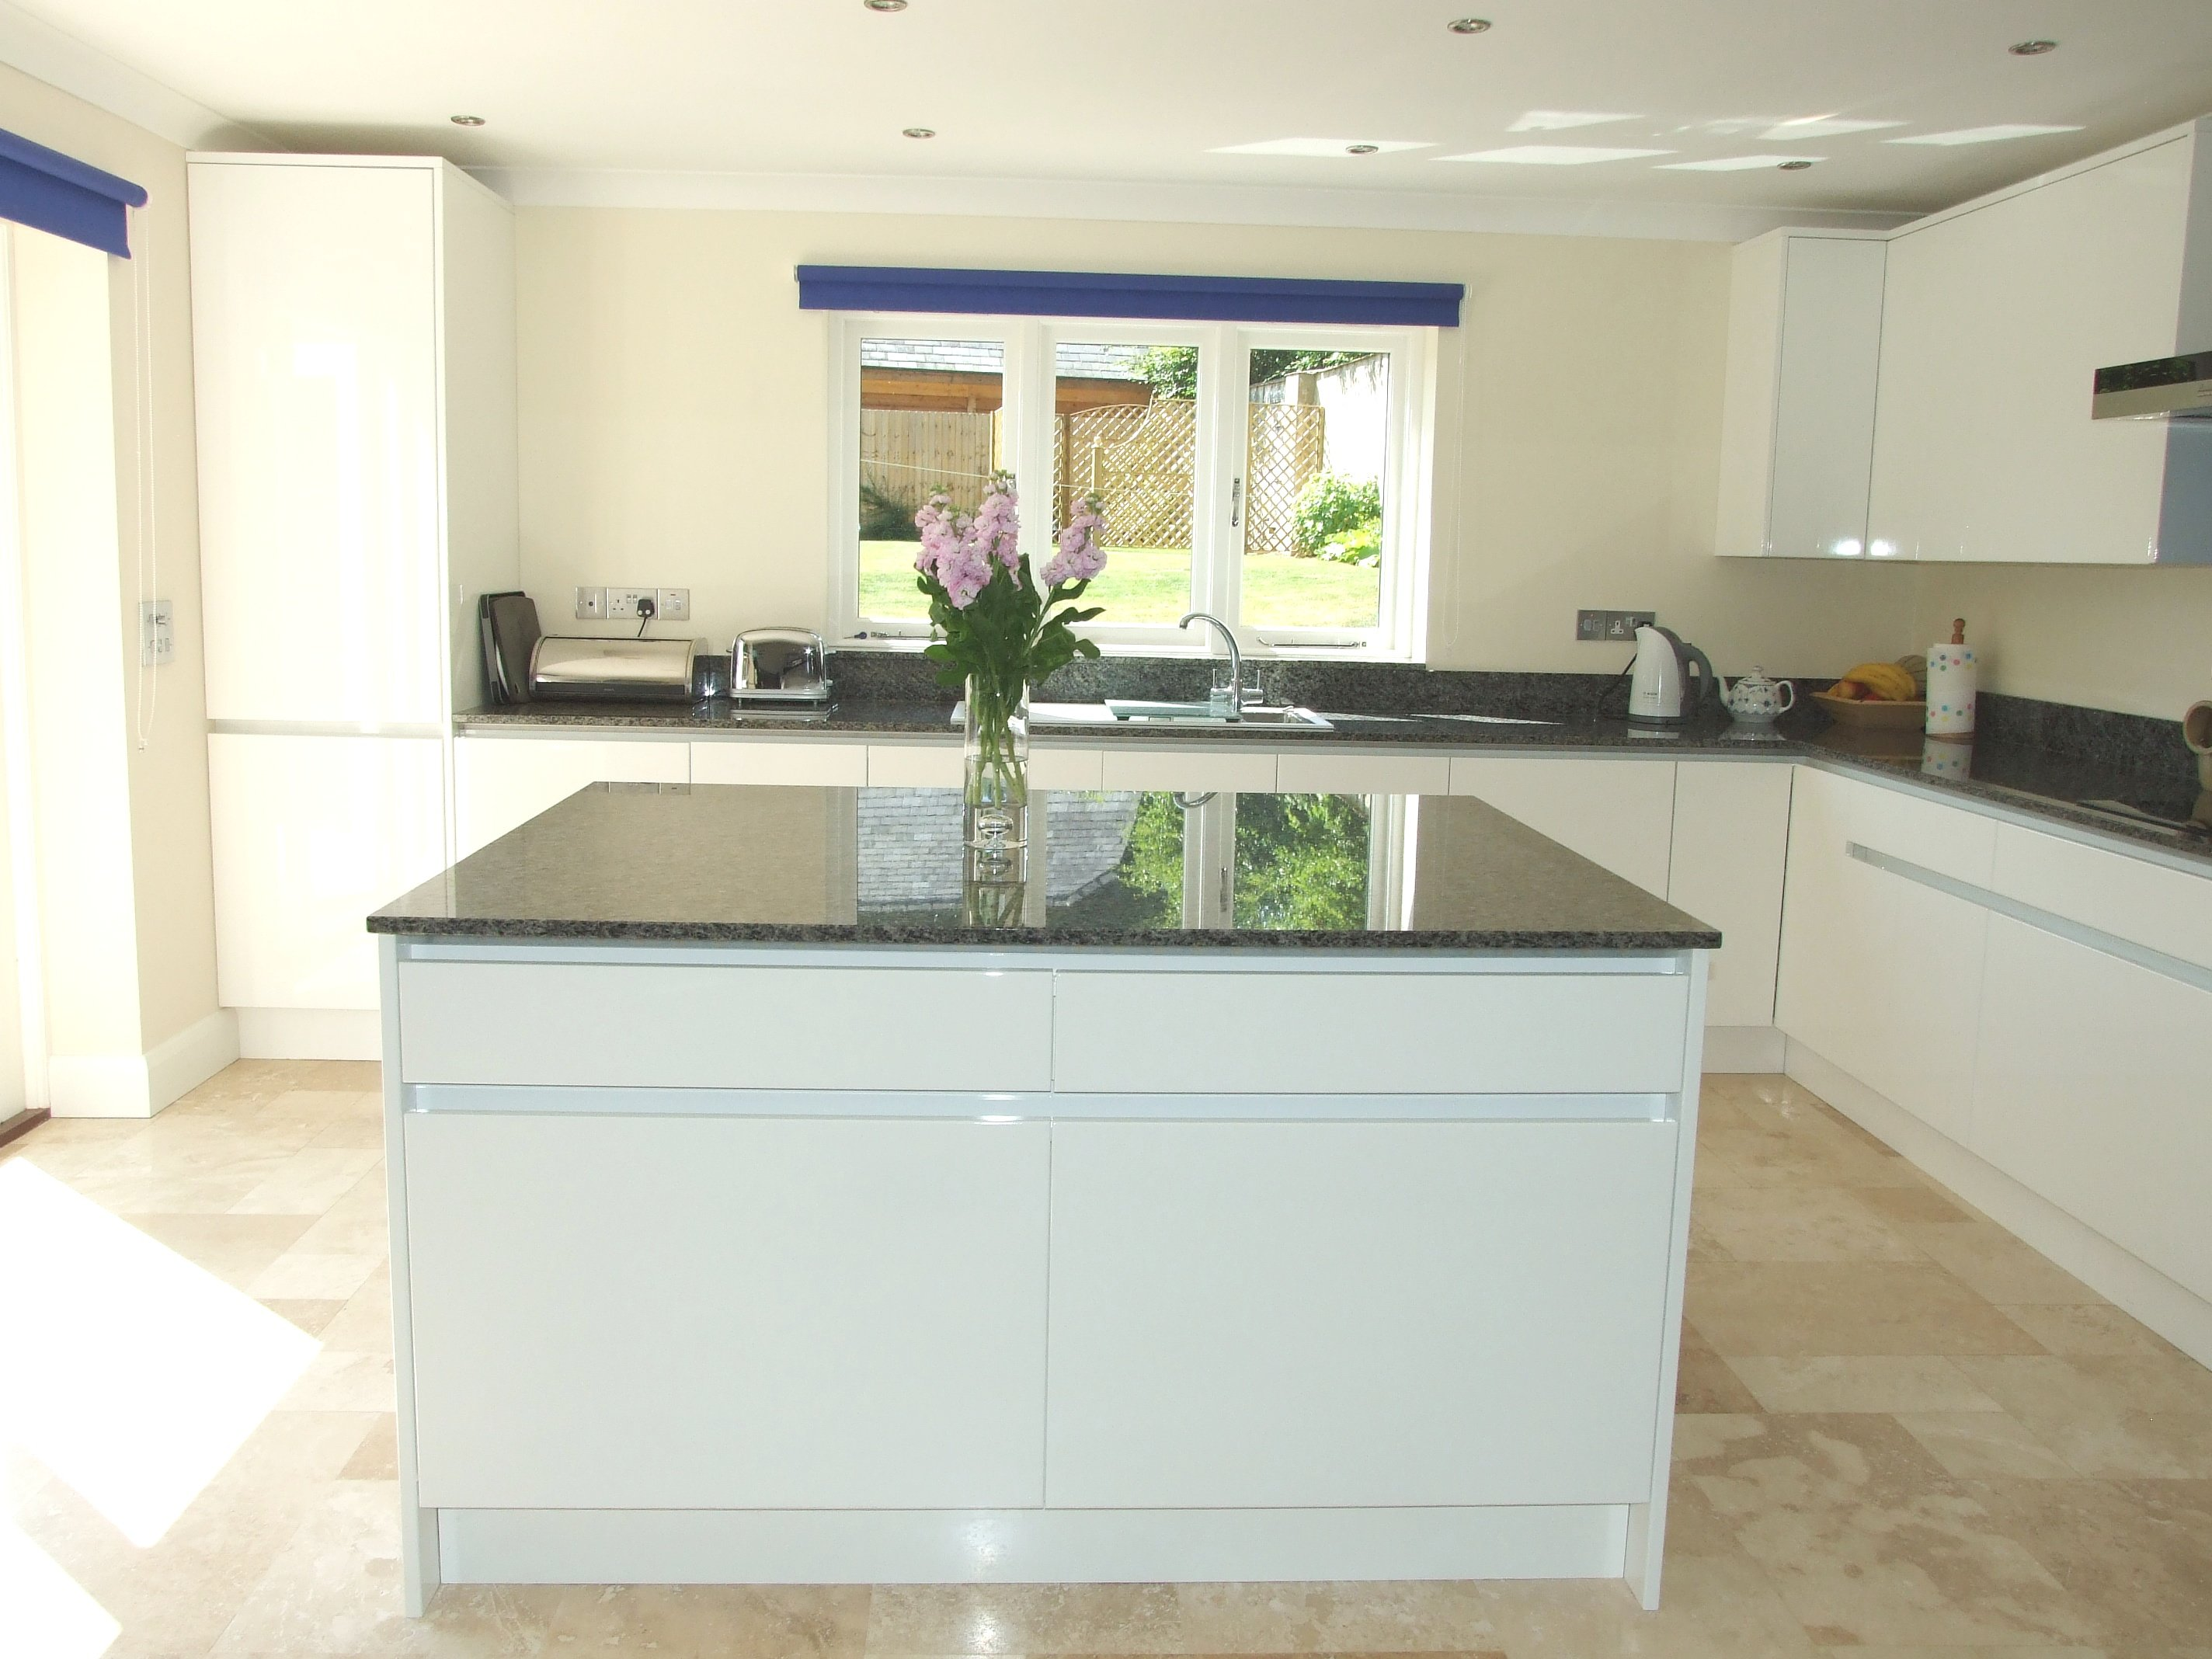 Gloss White Kitchen - Our latest work